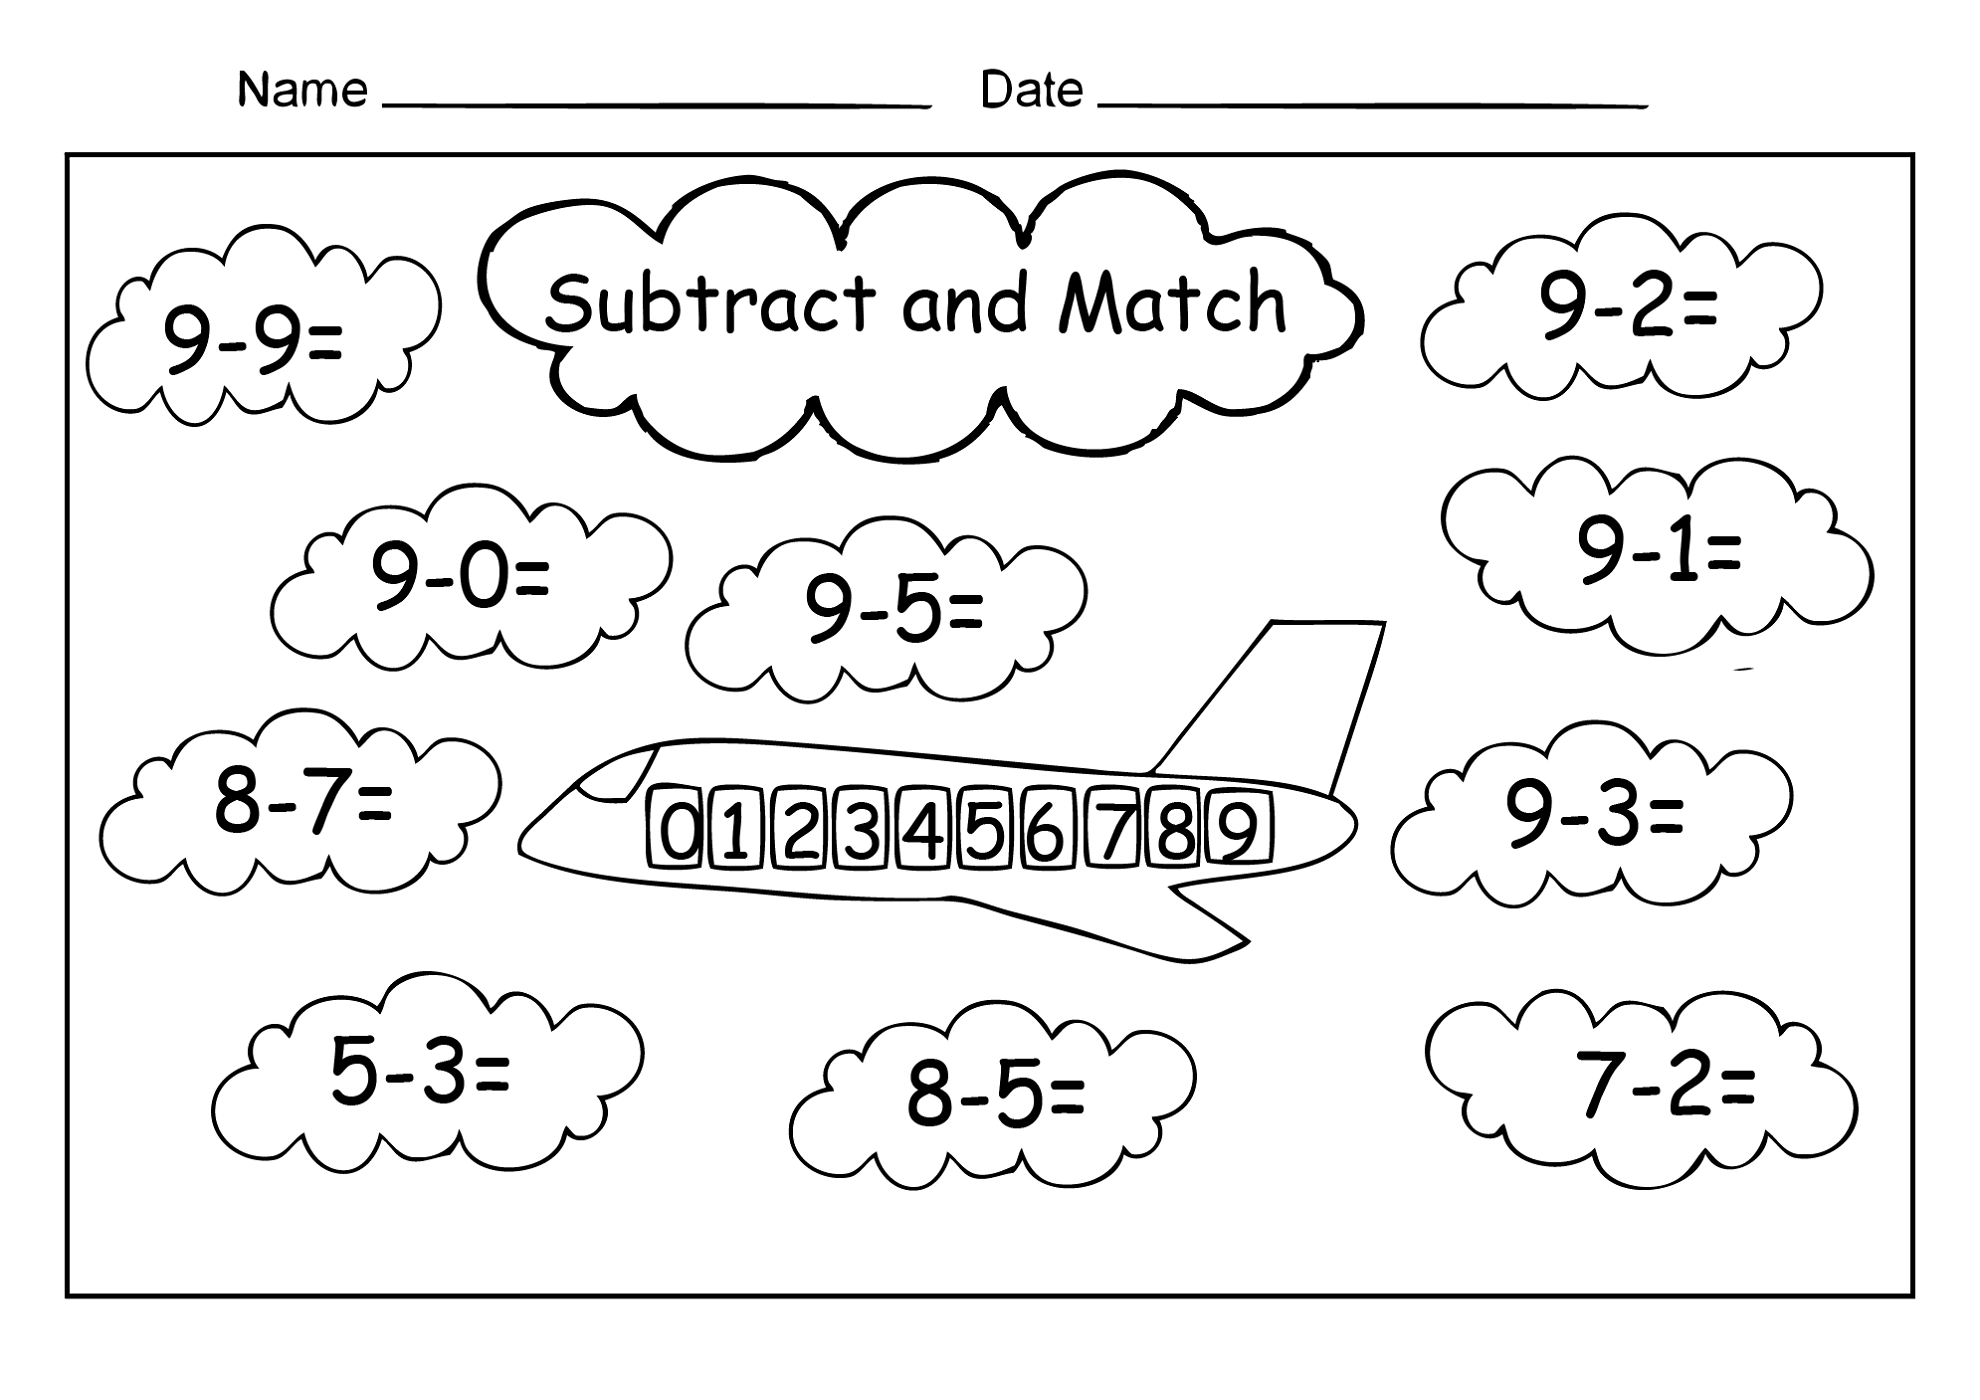 math worksheet : year 1 printable worksheets  math practice solved problems and  : Printable Maths Worksheets Year 1